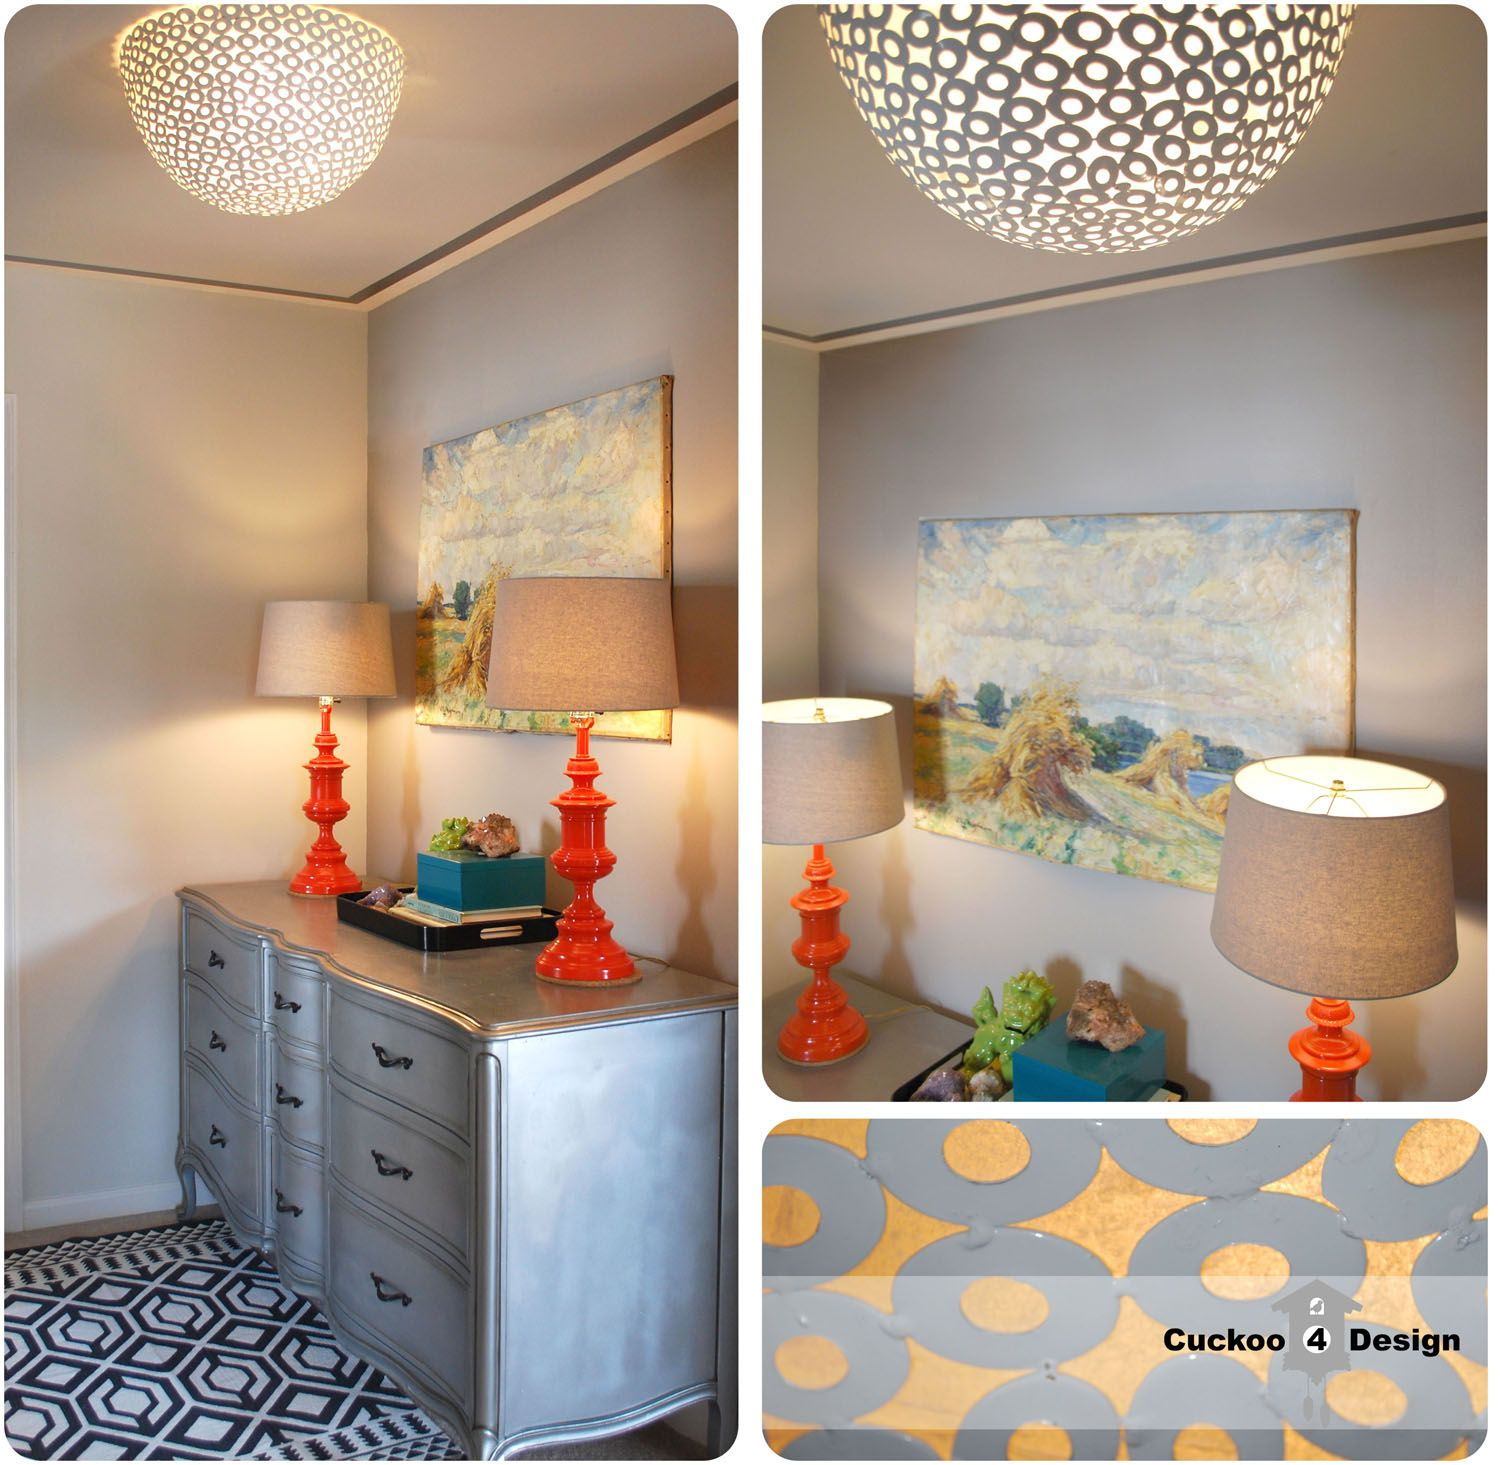 Diy Flush Mount Ceiling Fixture From A Metal Bowl Cover Up That Ugly Light